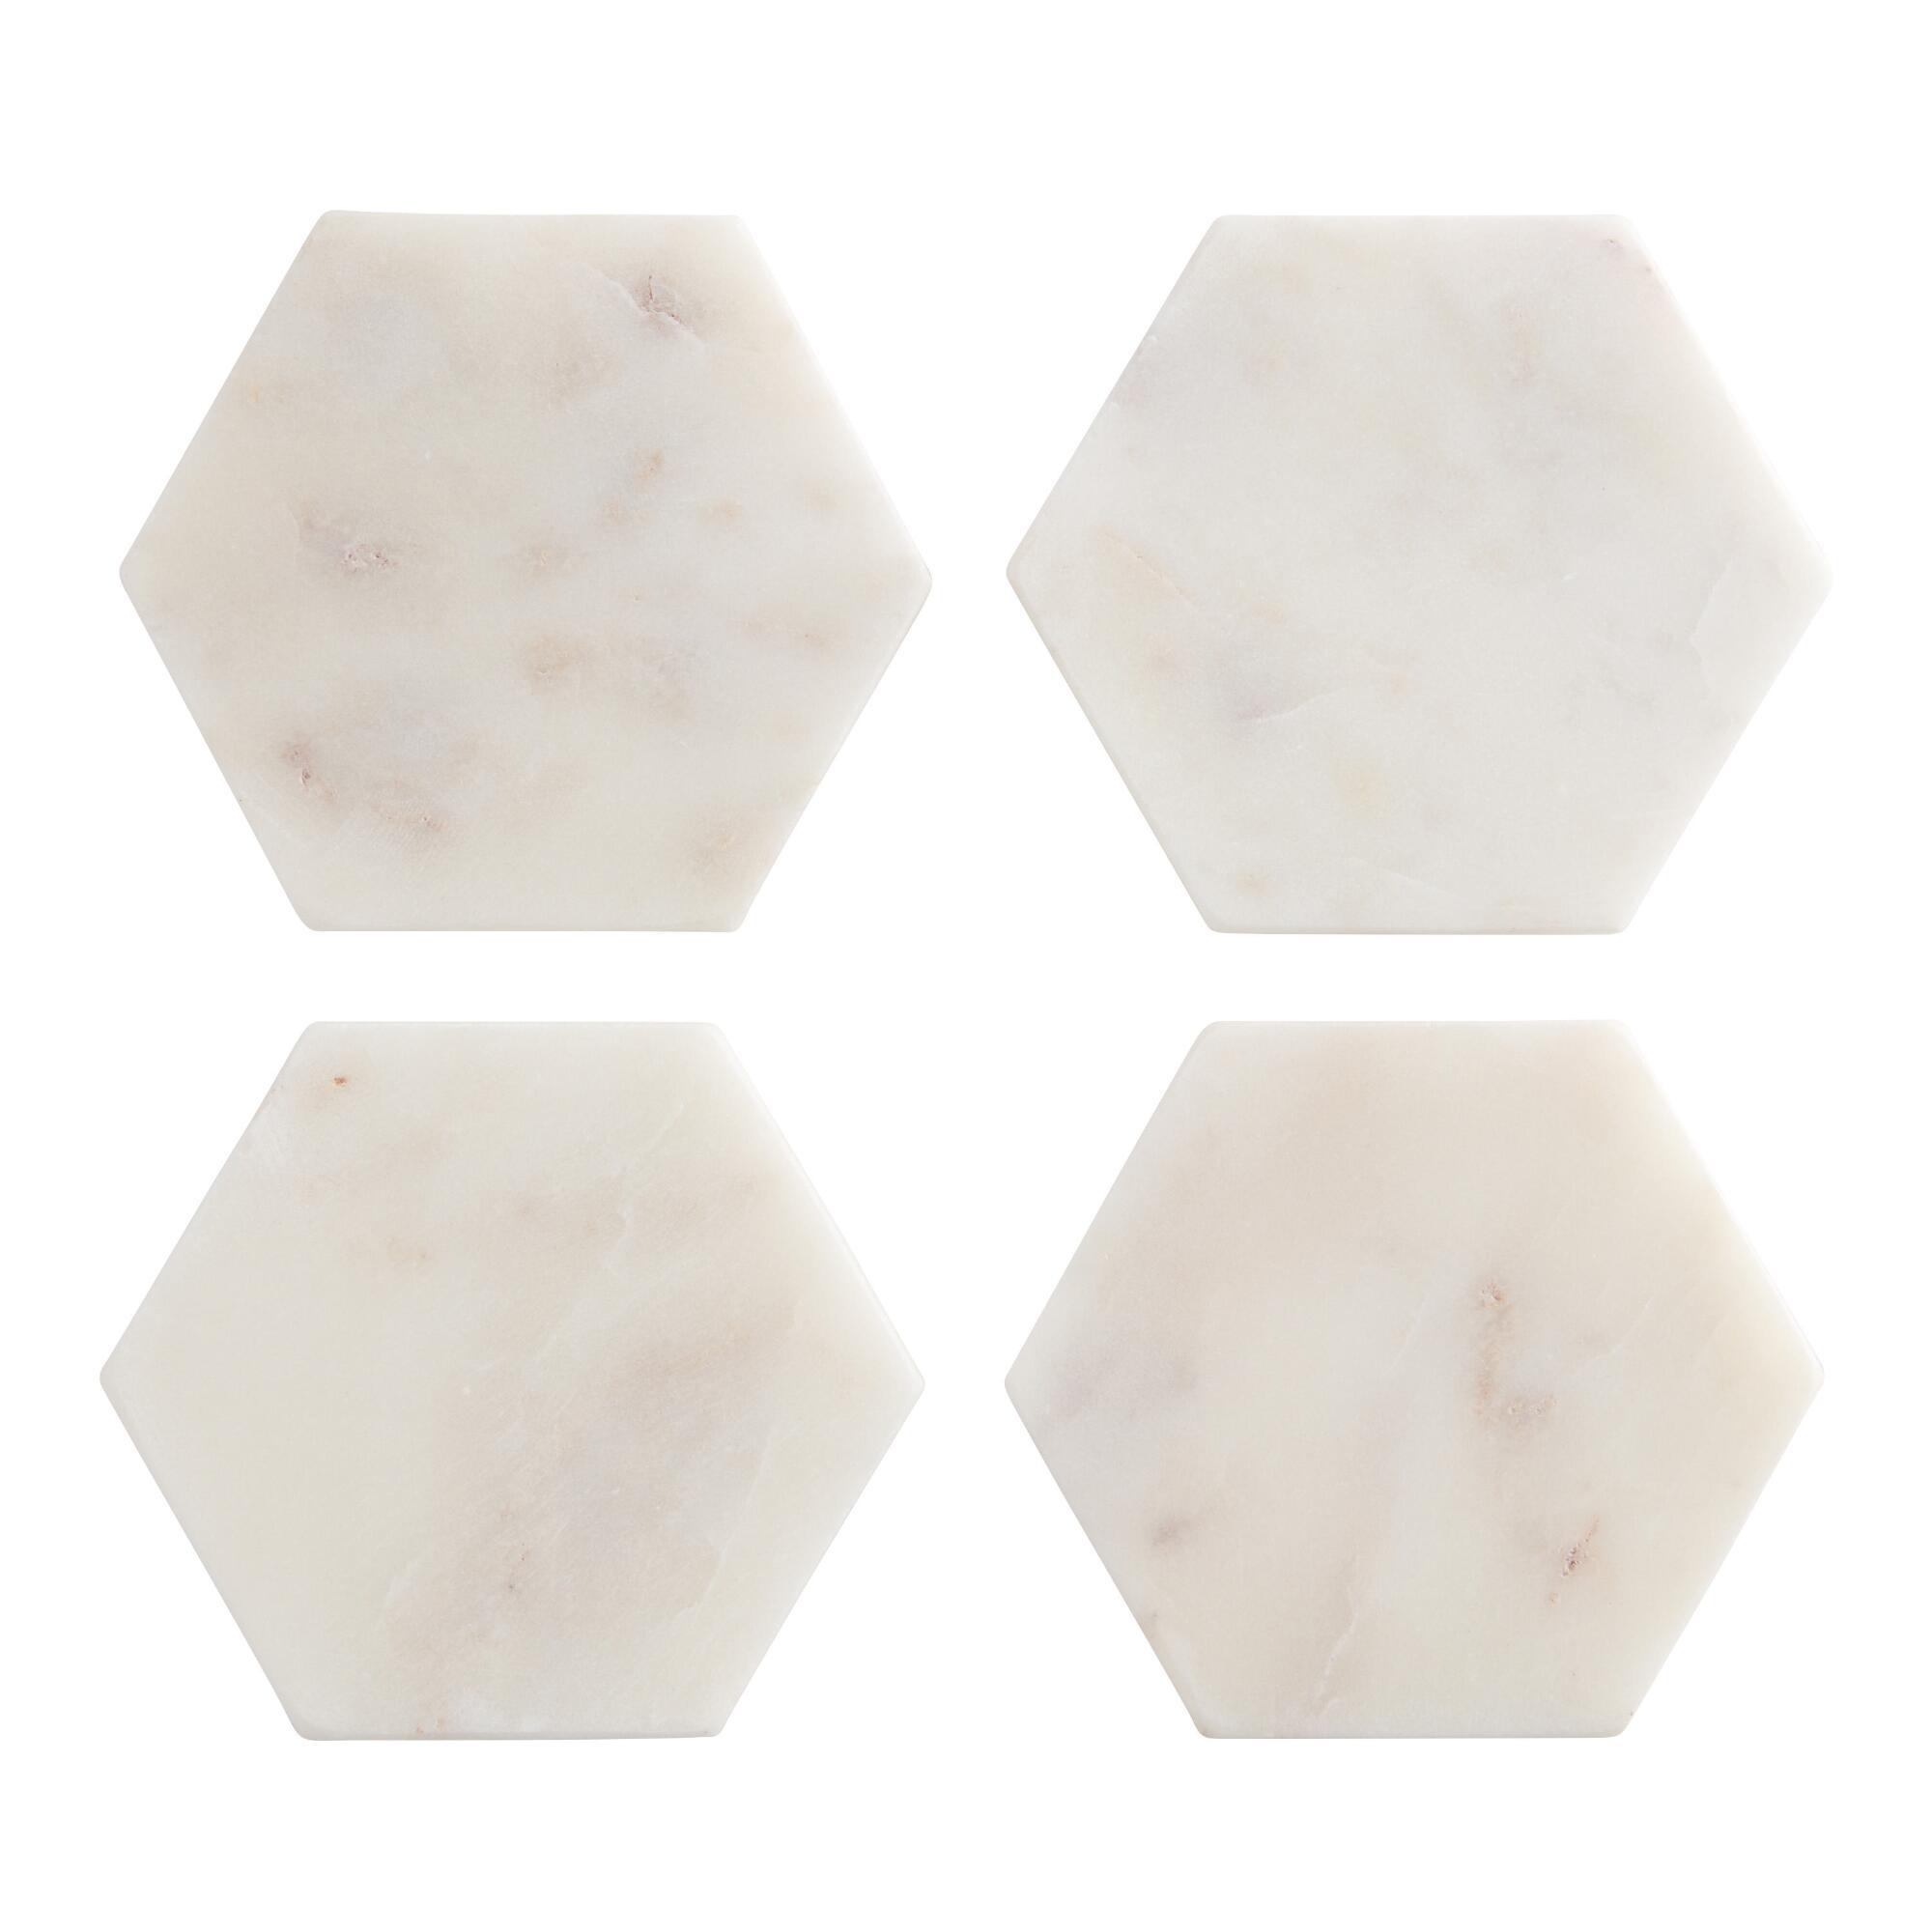 White Marble Hexagon Coasters Set of 4 by World Market